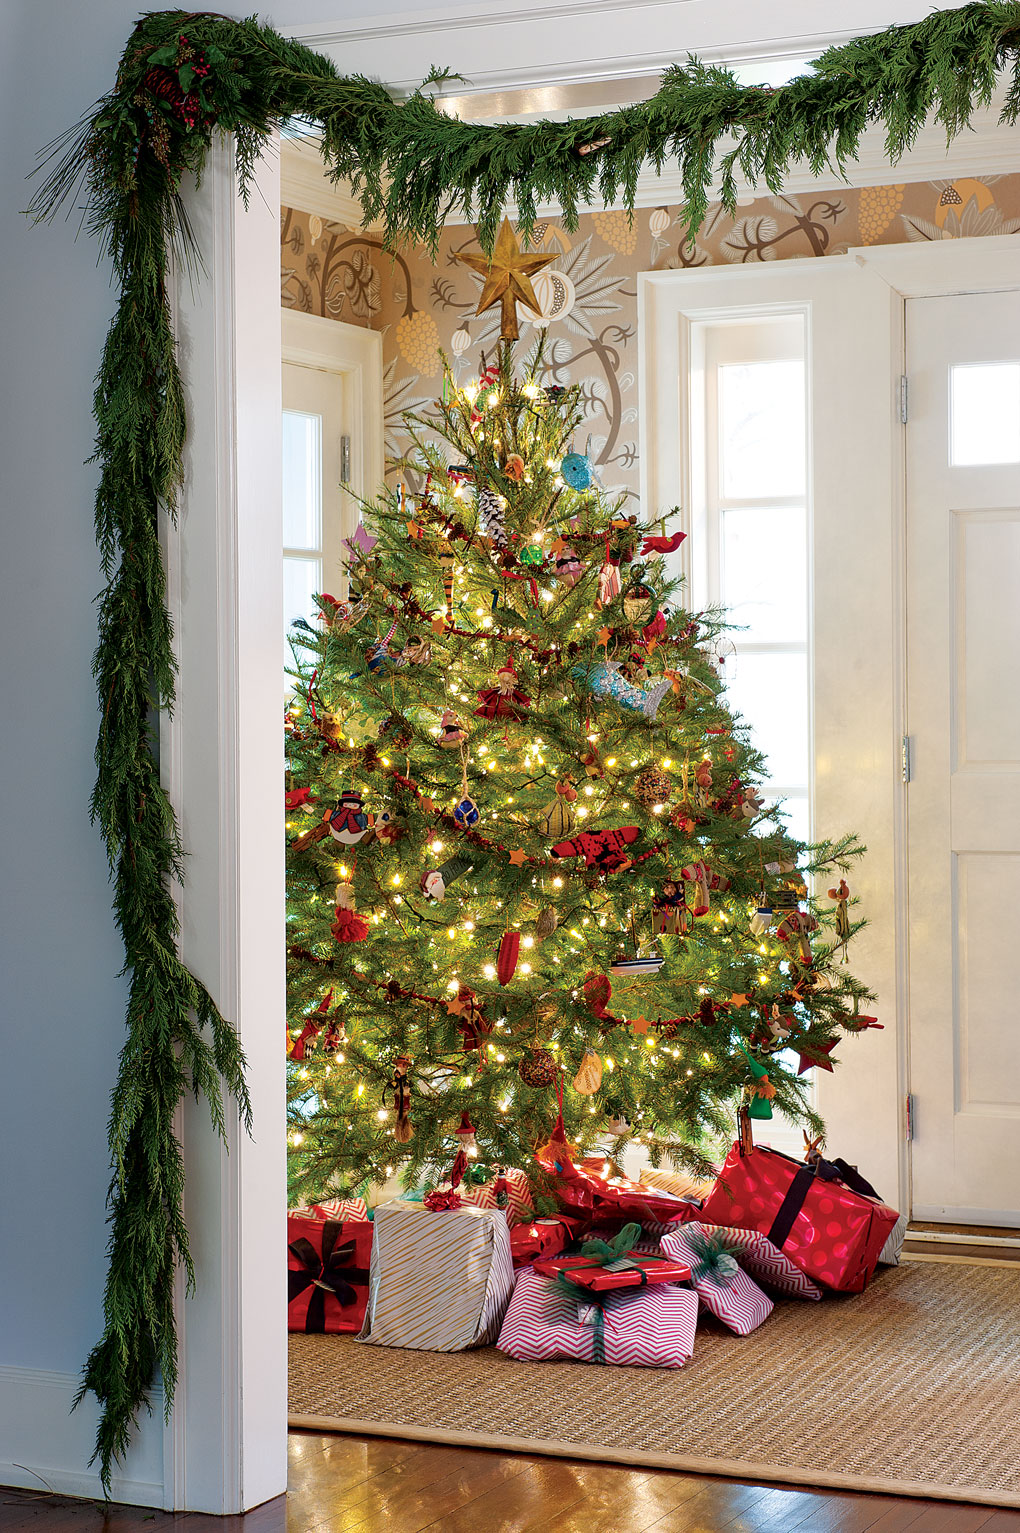 Pine garland frames a large entryway and a well-lit Christmas tree stands near the front door in the foyer.